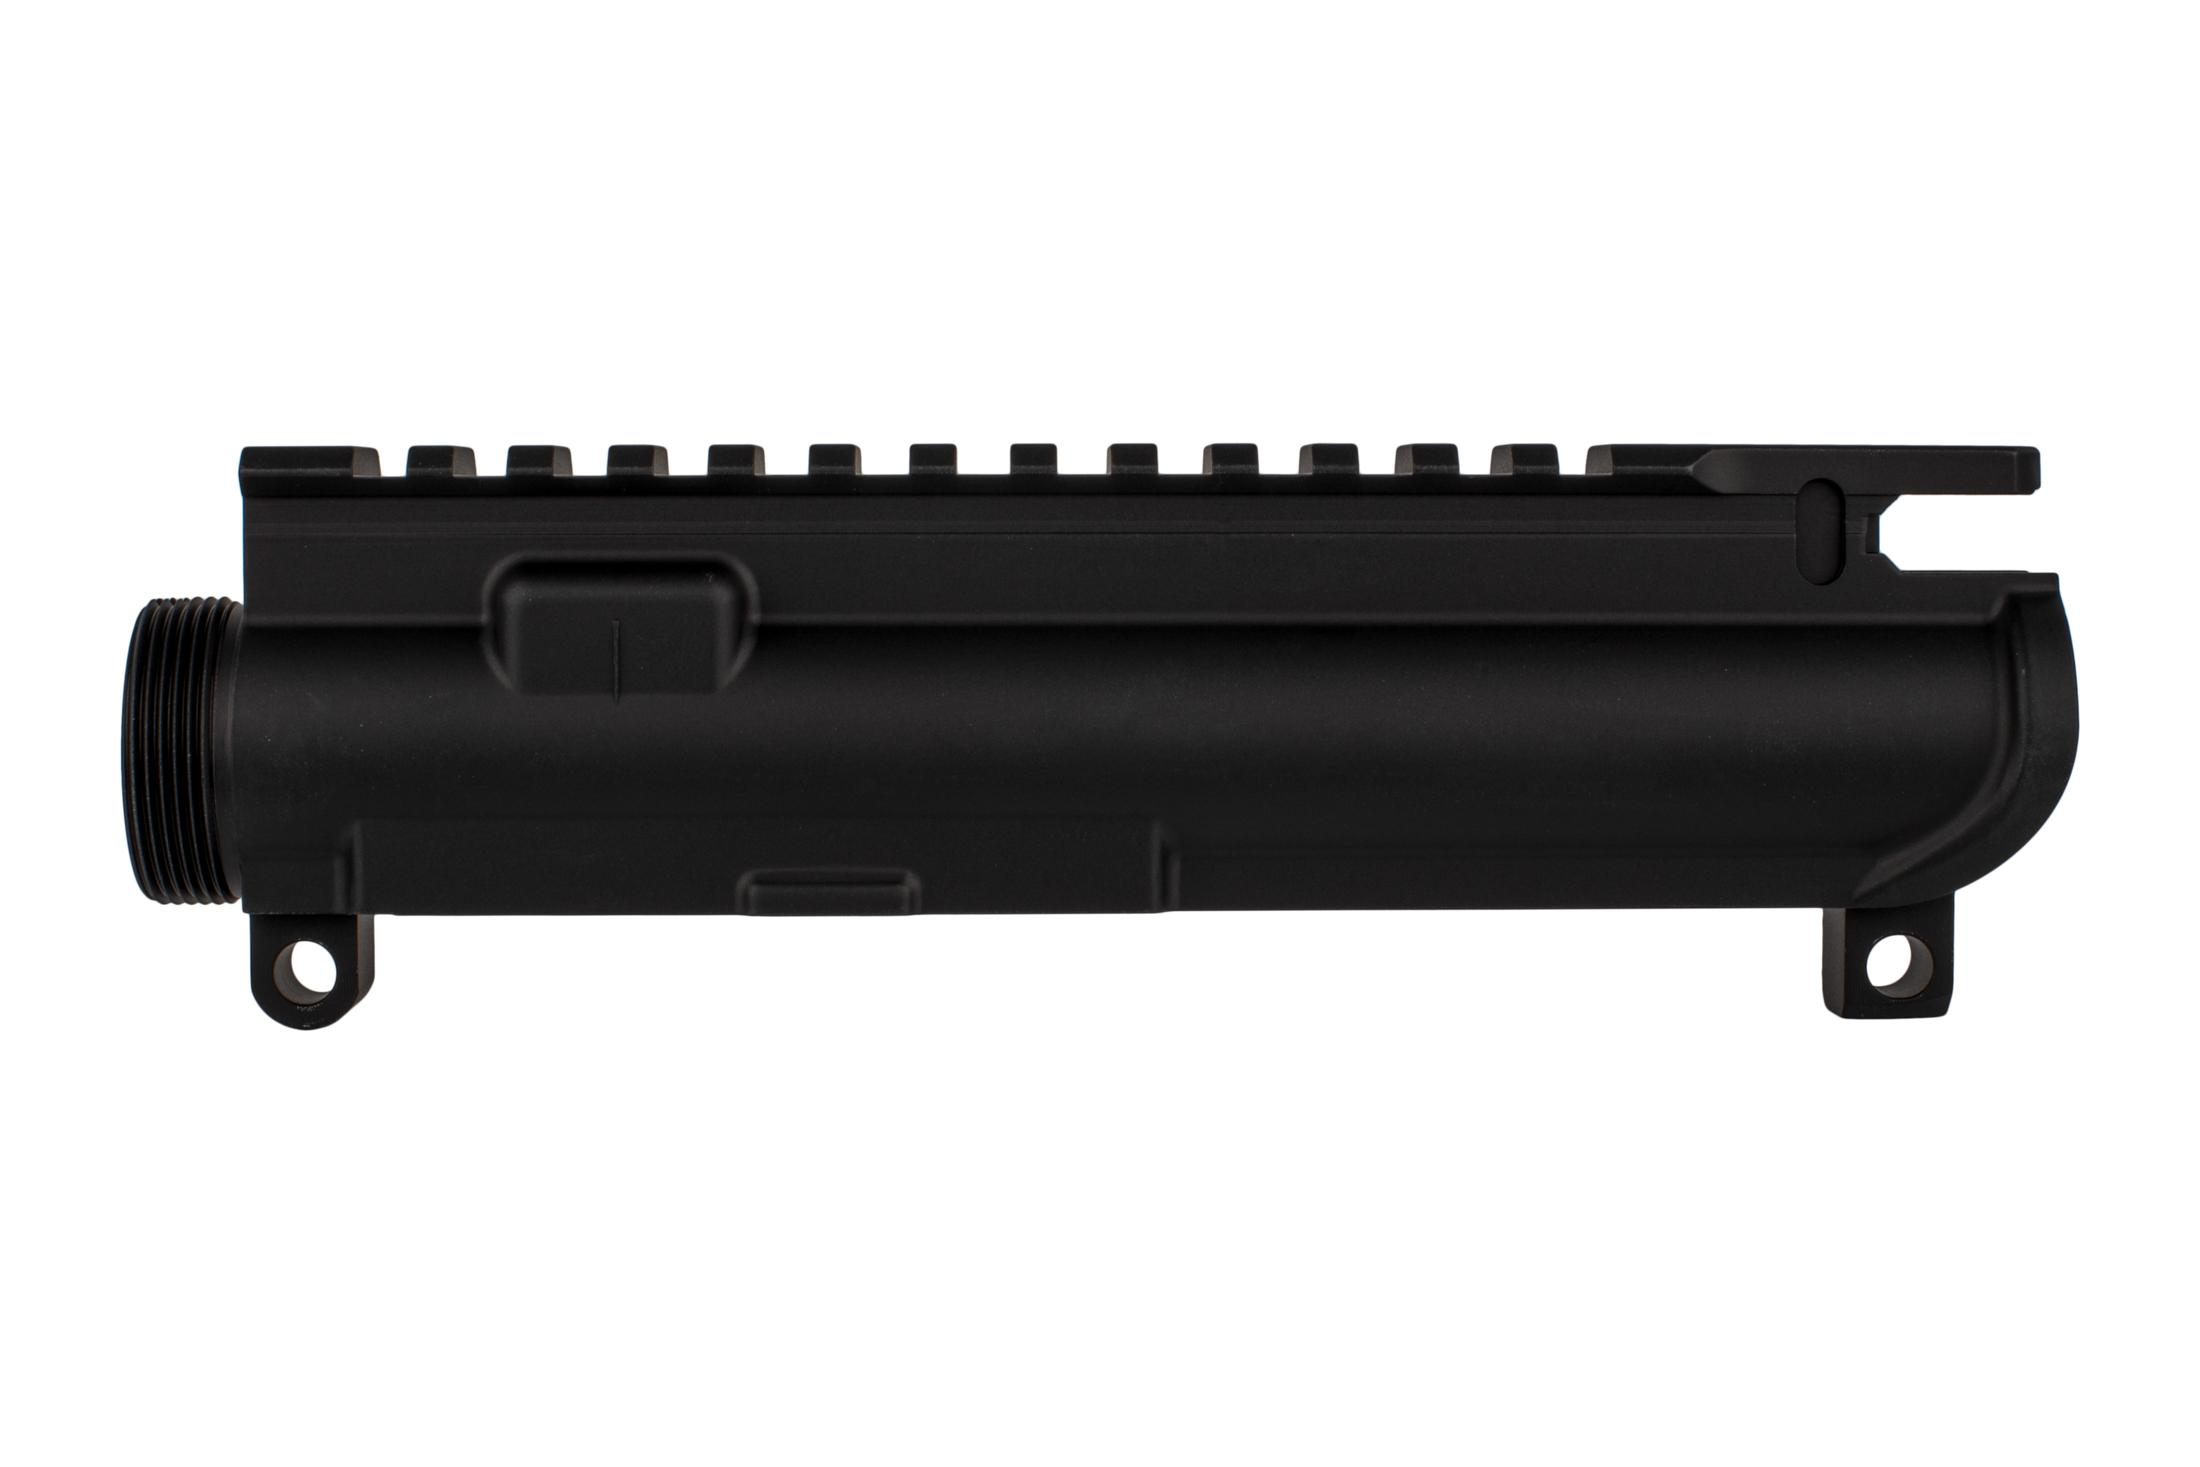 The Aero Precision XL upper stripped receiver AR15 features laser engraved T-marks on the picatinny rail